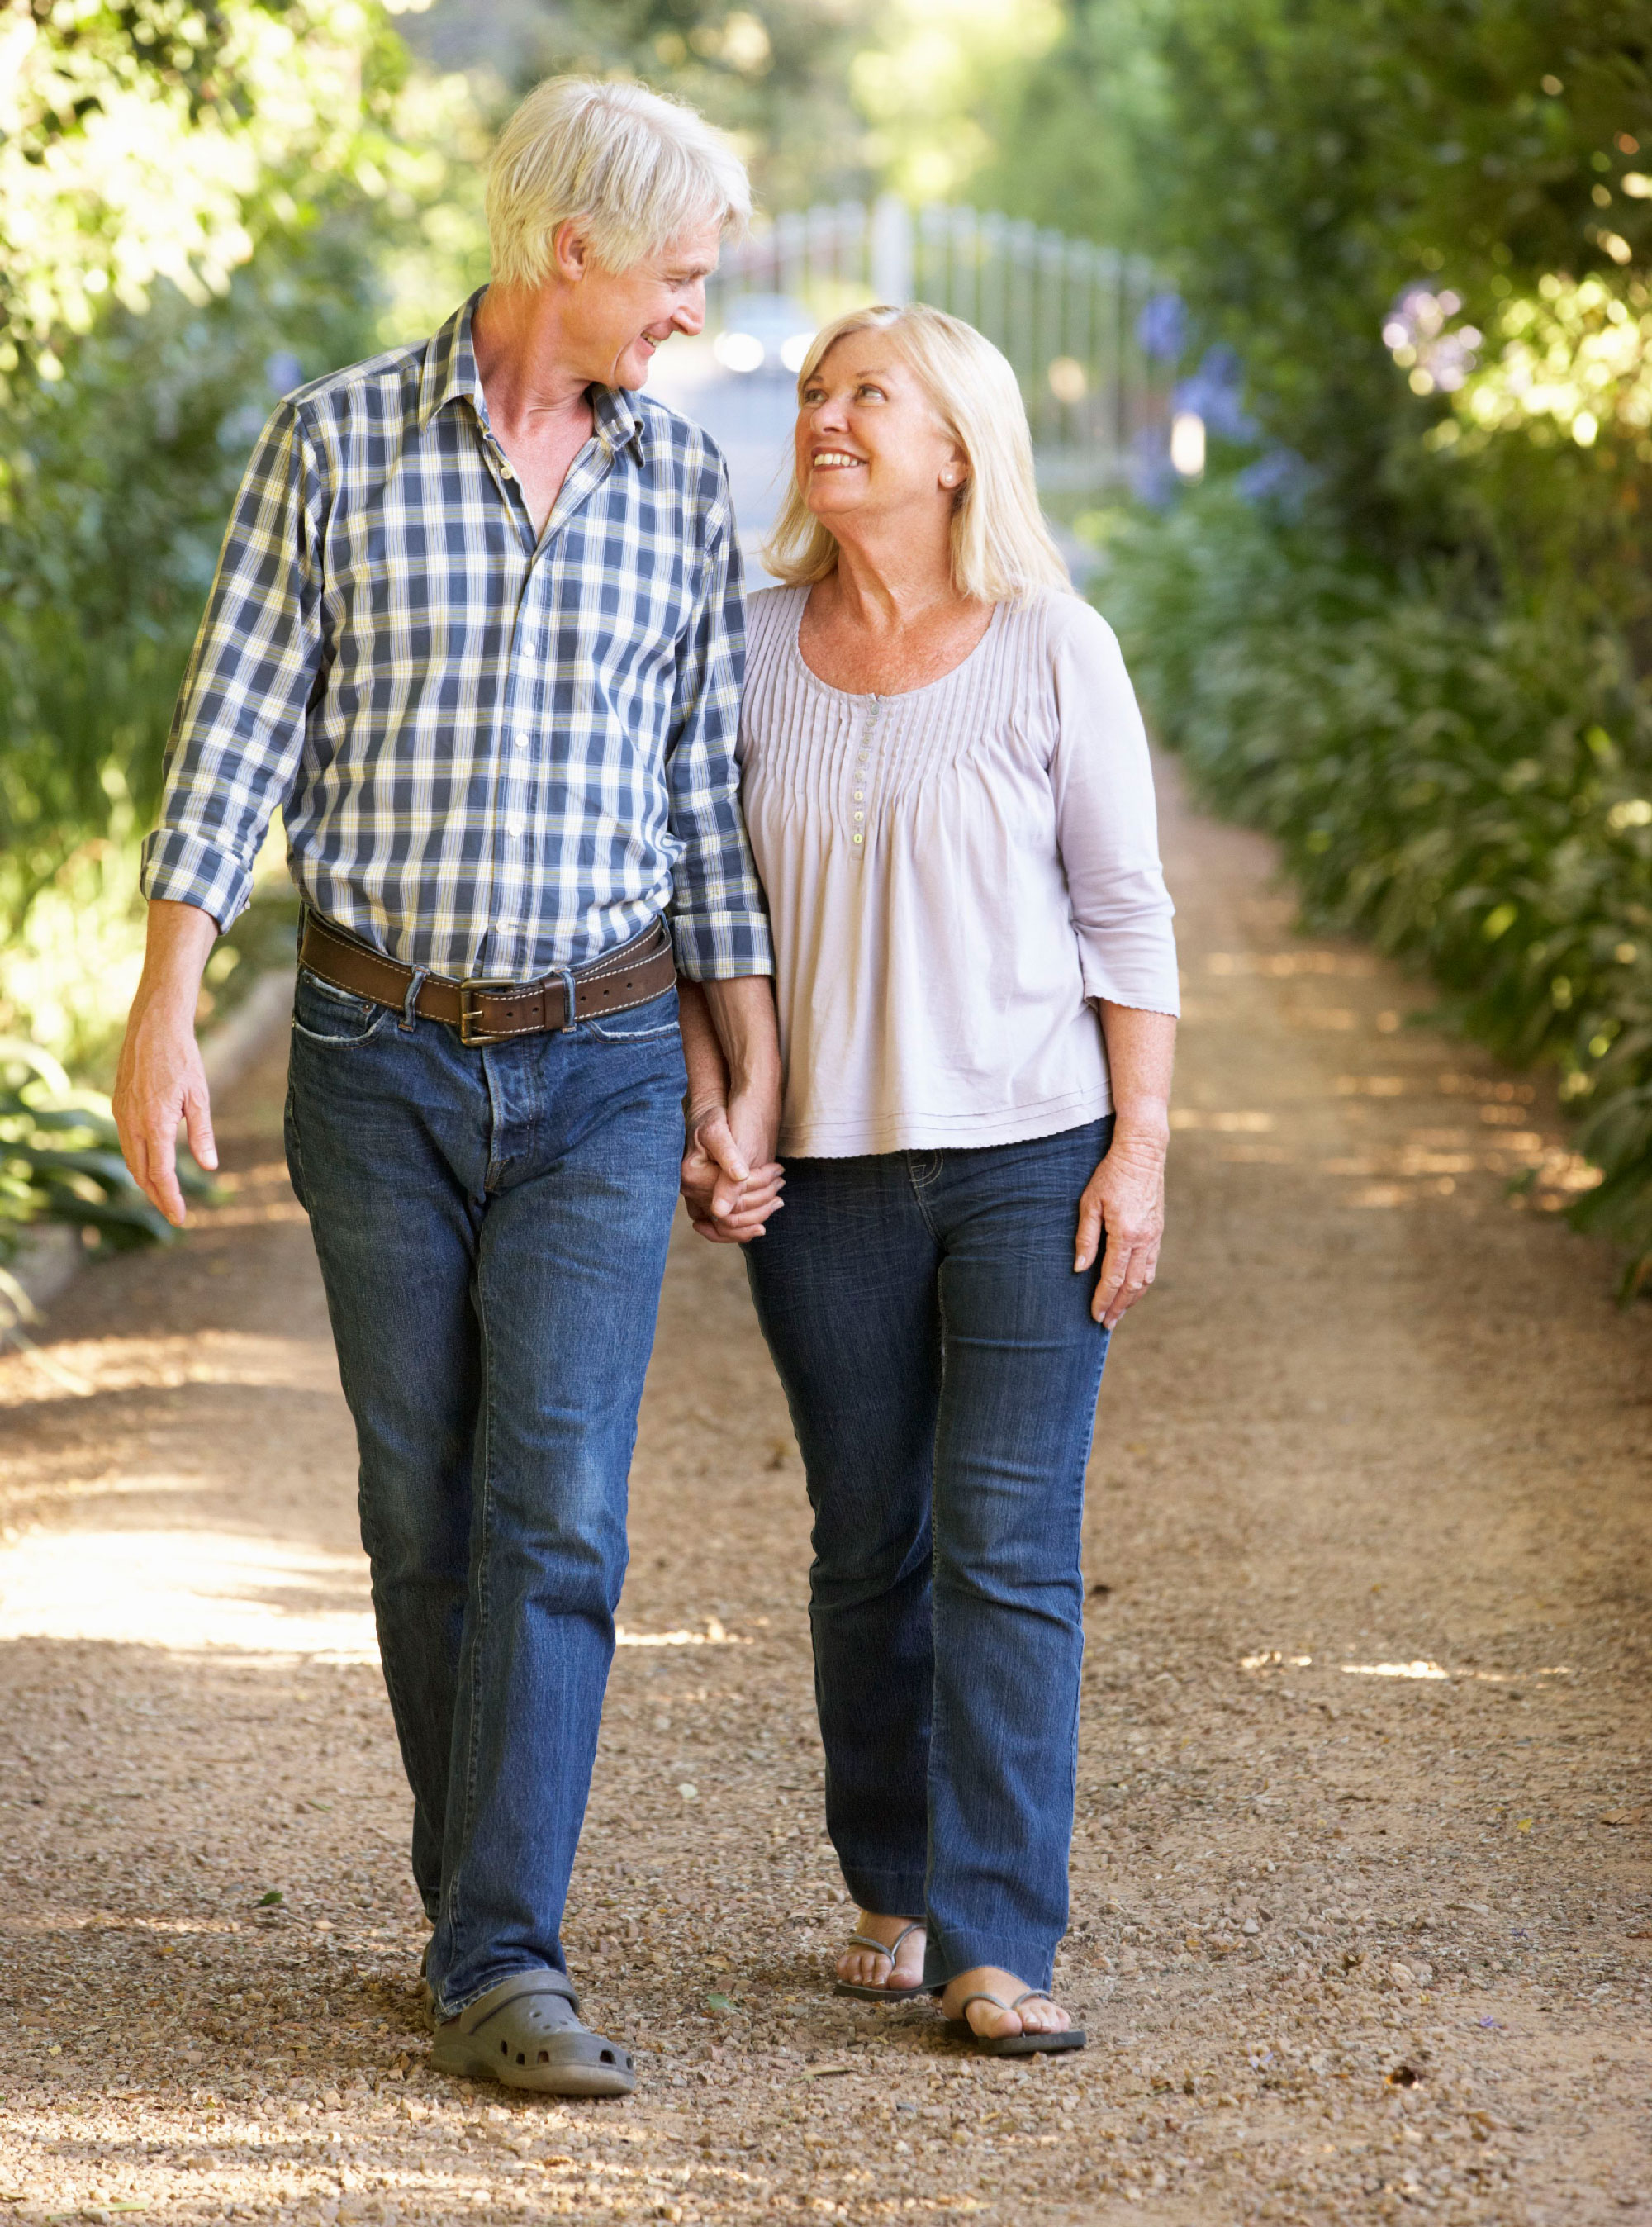 Dating sites for seniors in houston